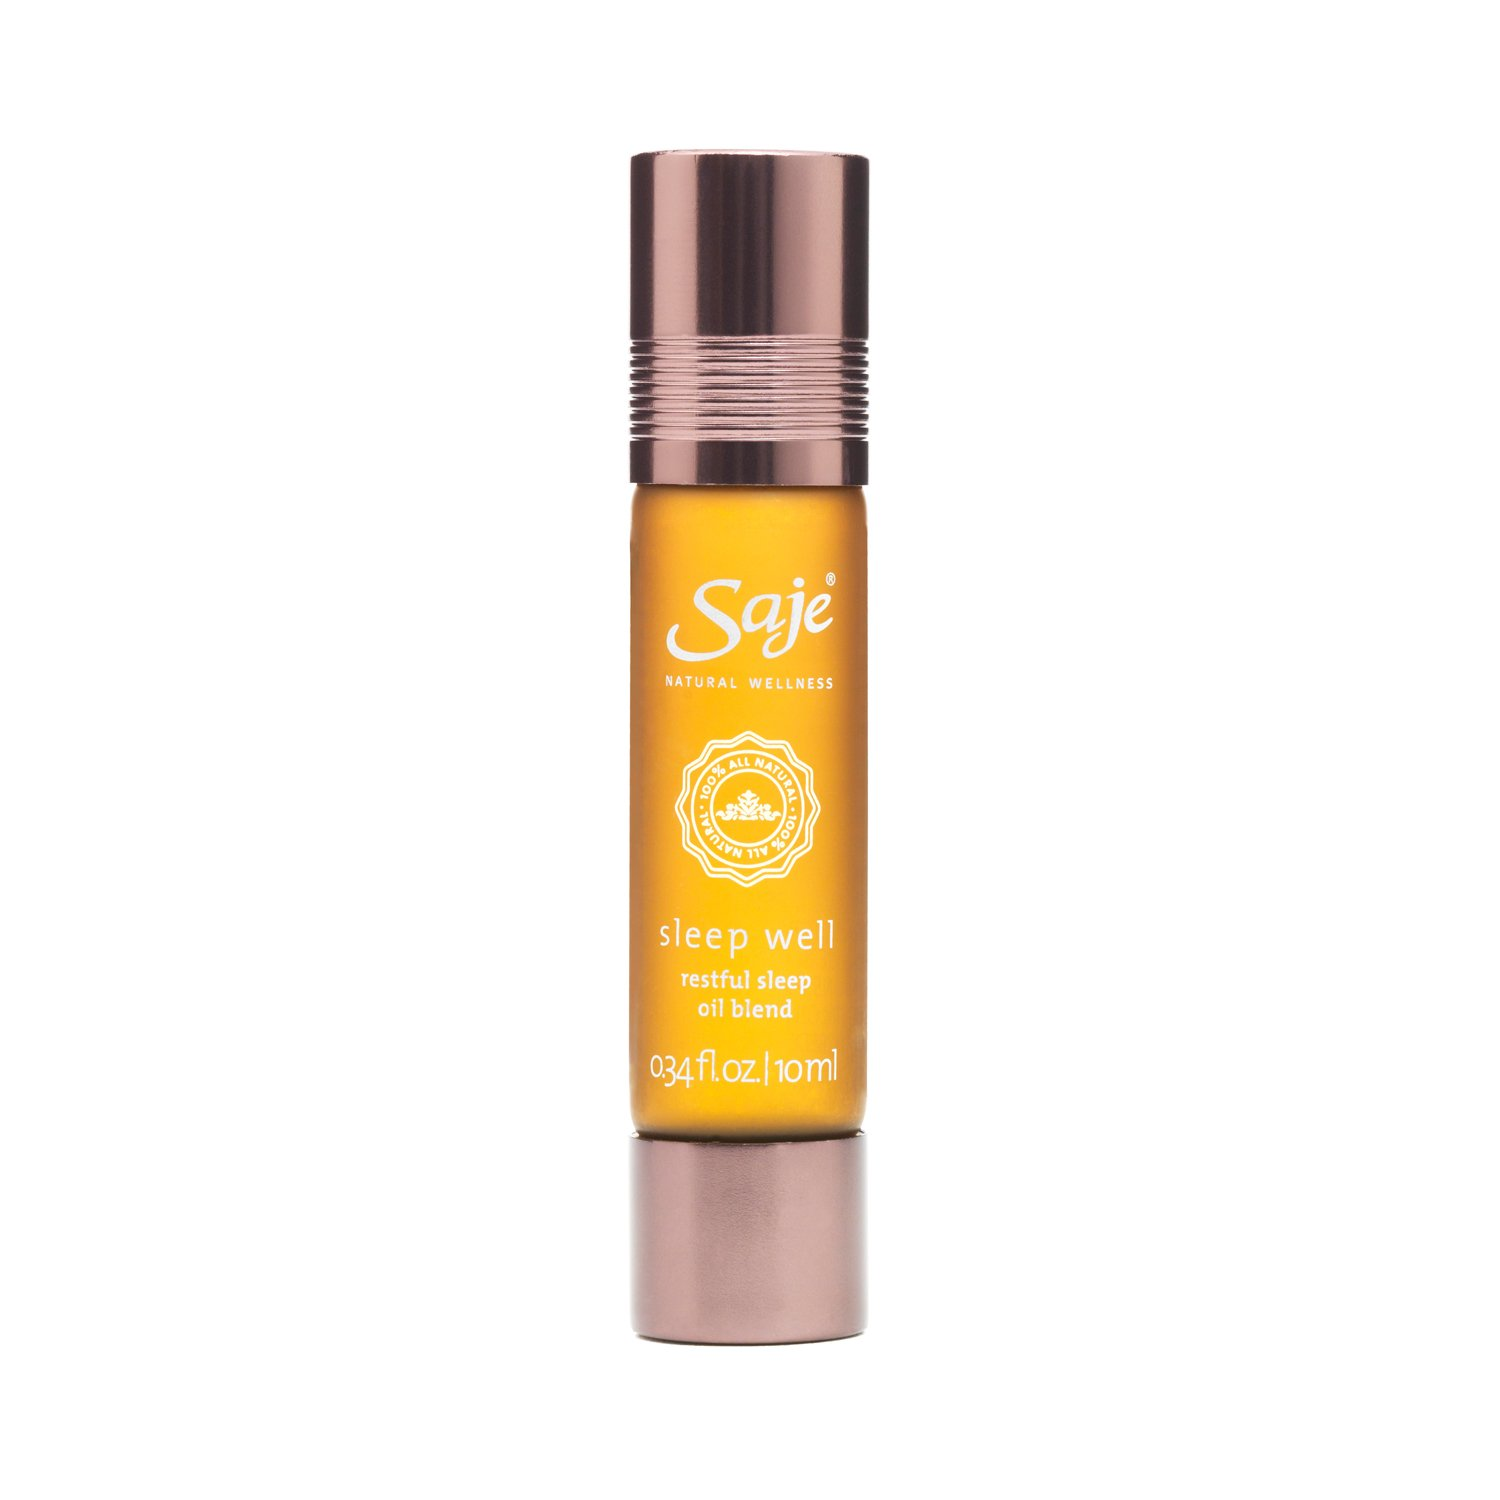 Saje Sleep Well Essential Oil Blend, Calming and Relaxing, Roll-On Application, 100% Plant-Based (0.34 fl oz)